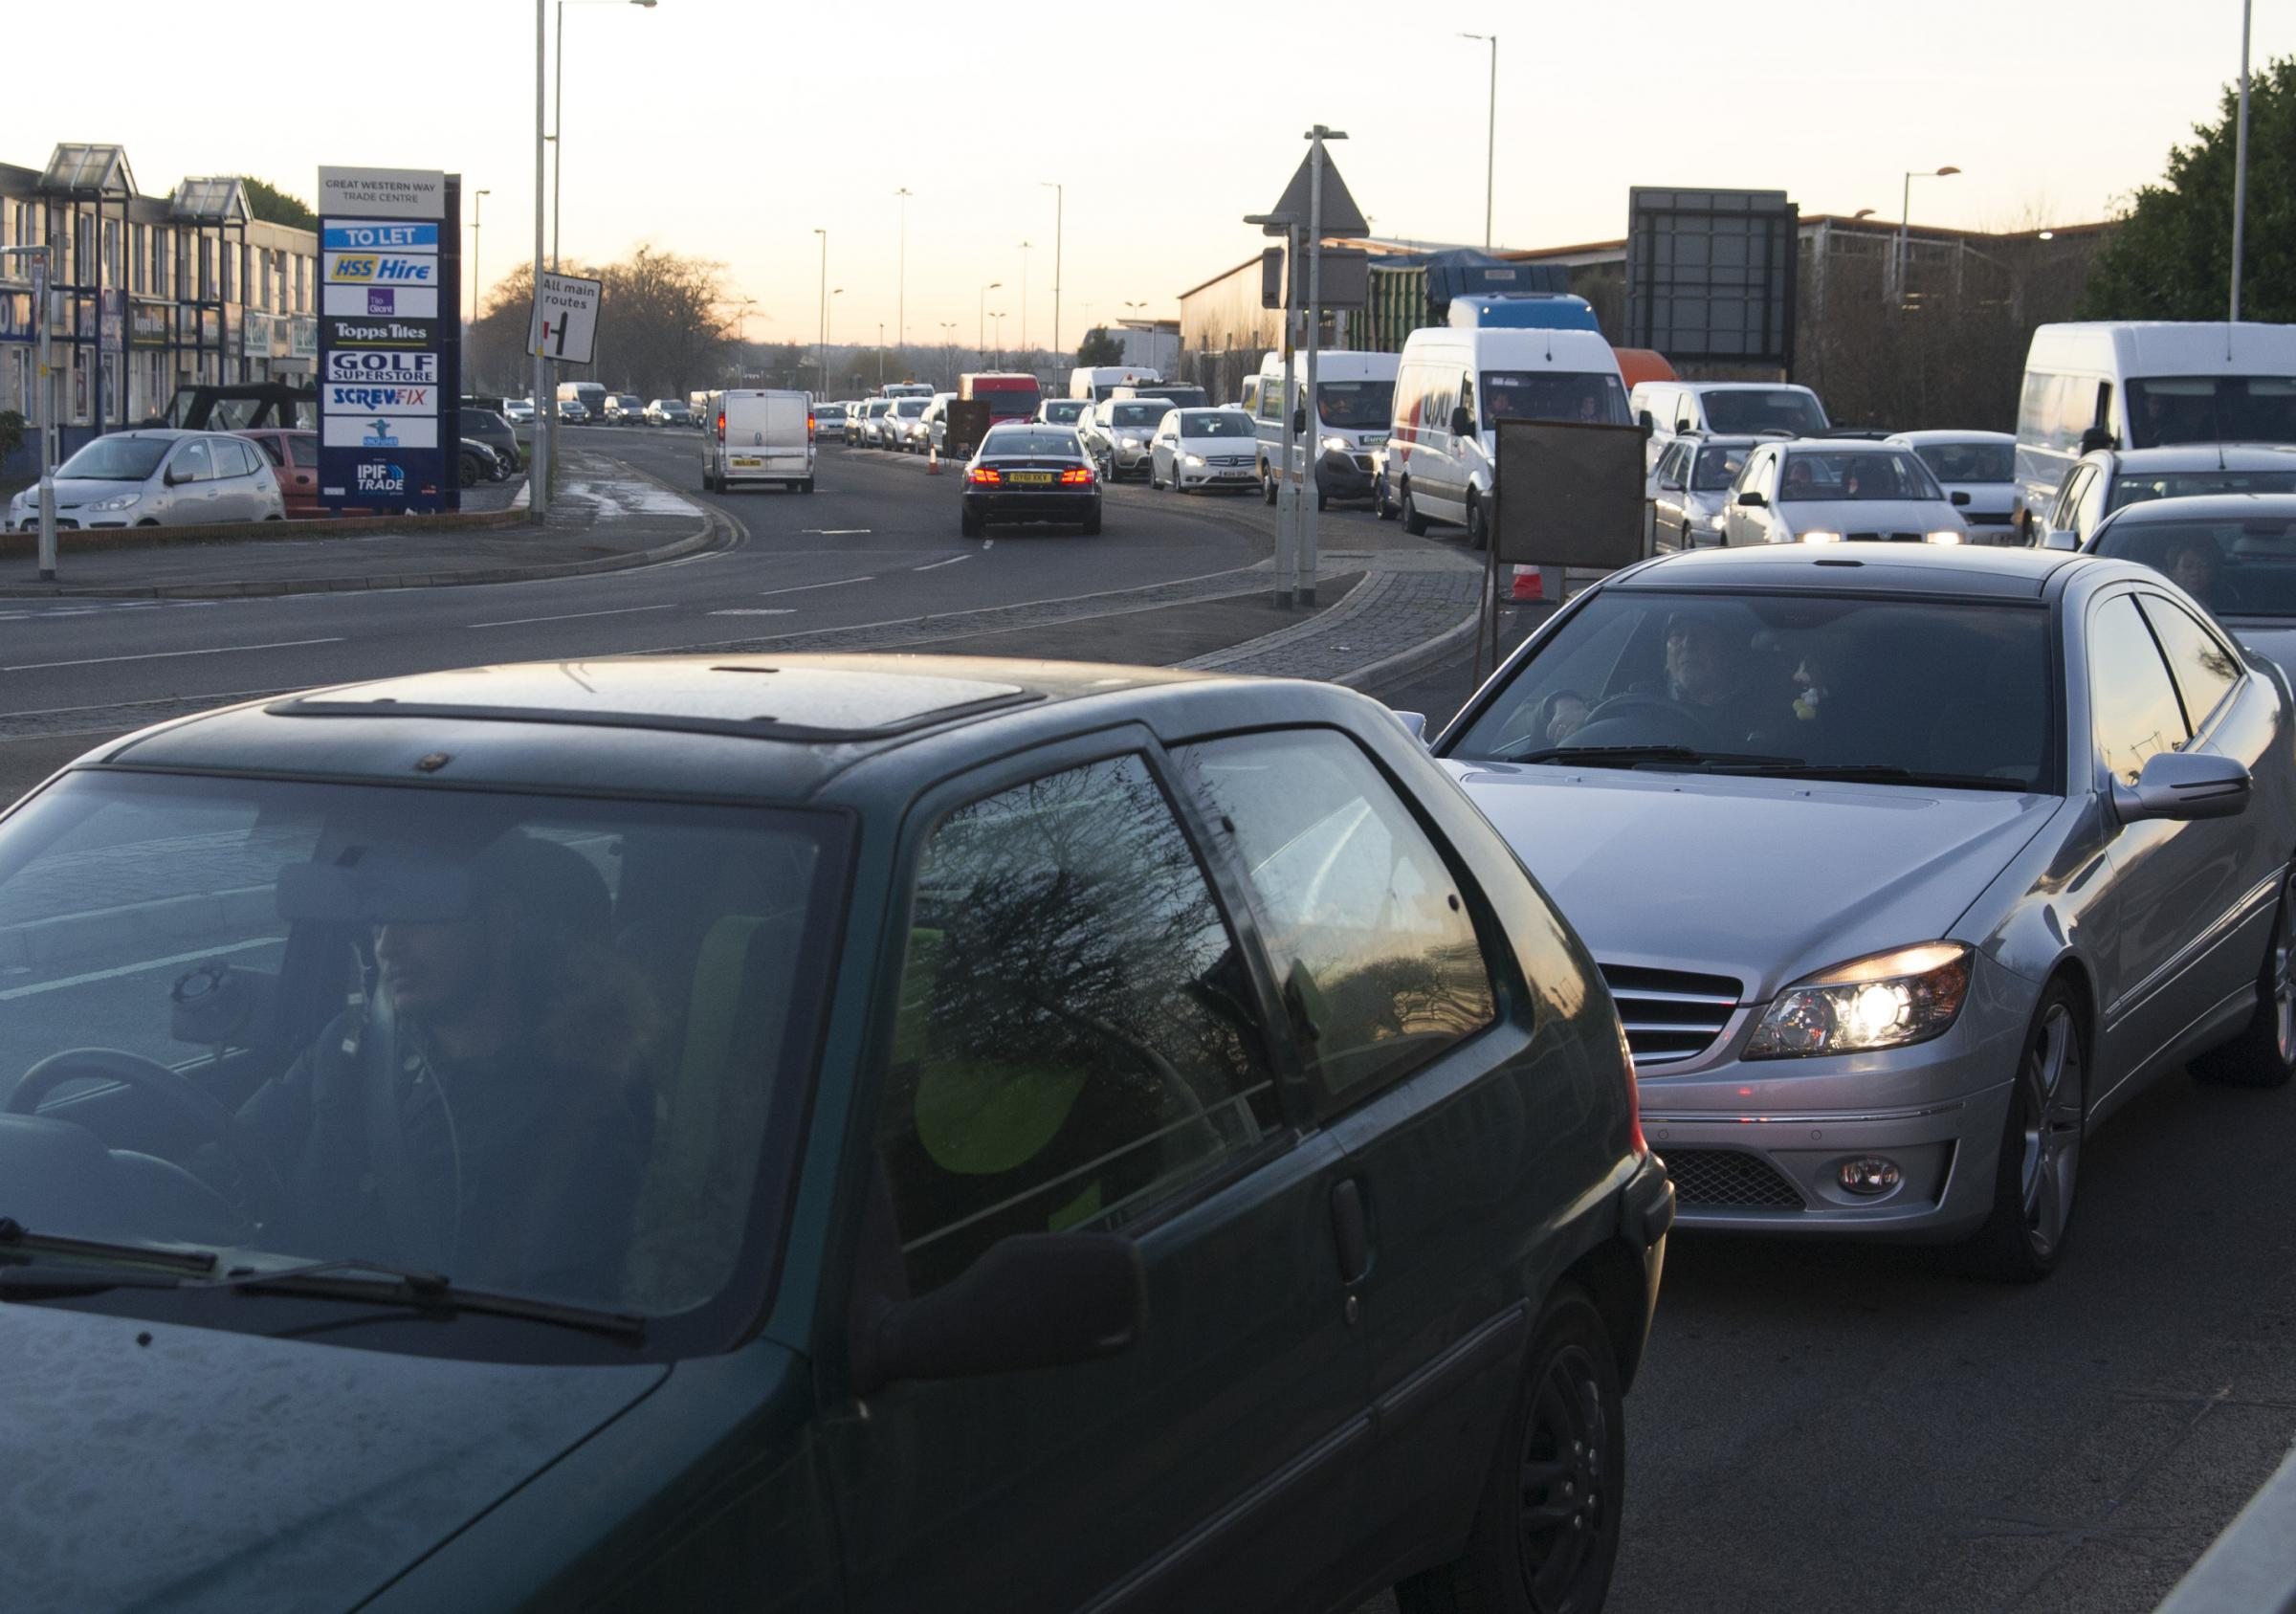 Roadworks Drivers Warned Of Great Western Way Works And Junction 16 4 Switch Screwfix Improvements Swindon Advertiser